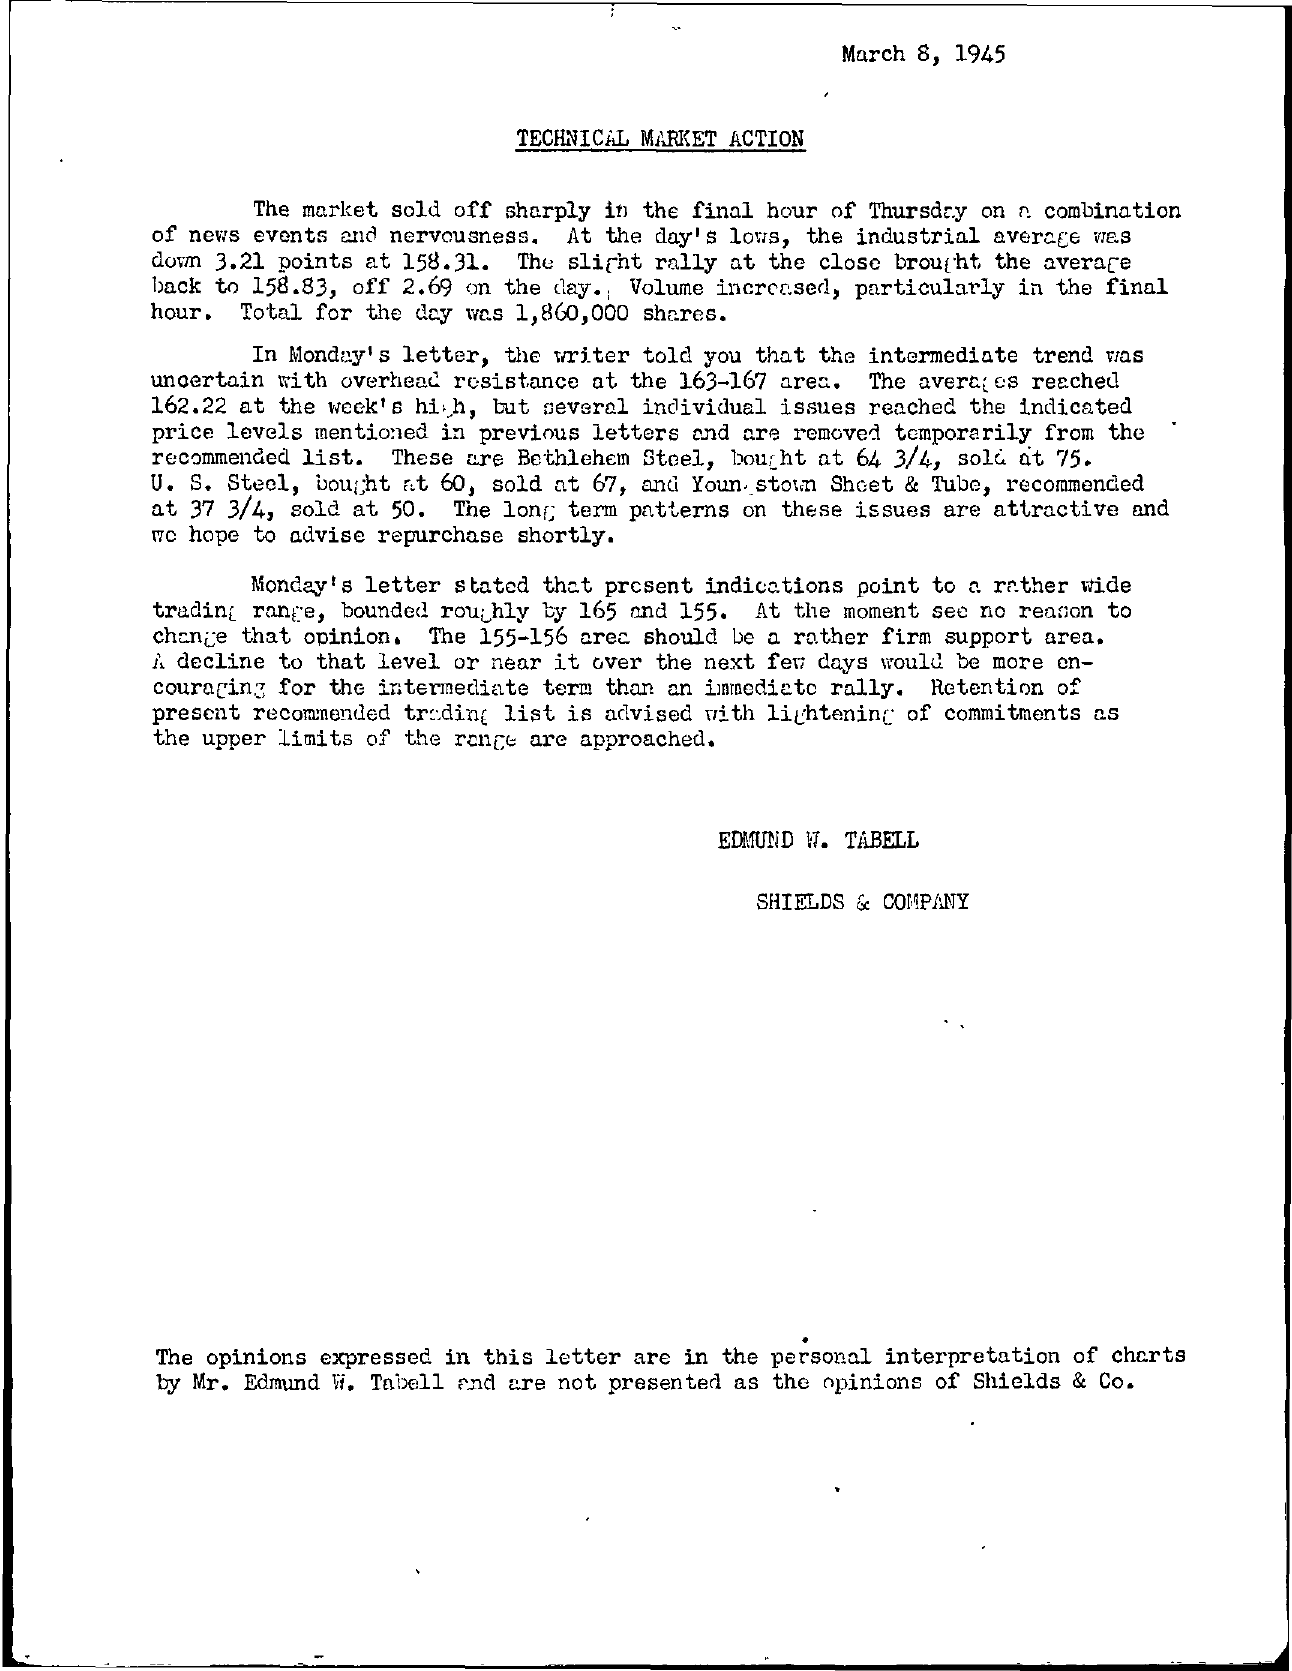 Tabell's Market Letter - March 08, 1945